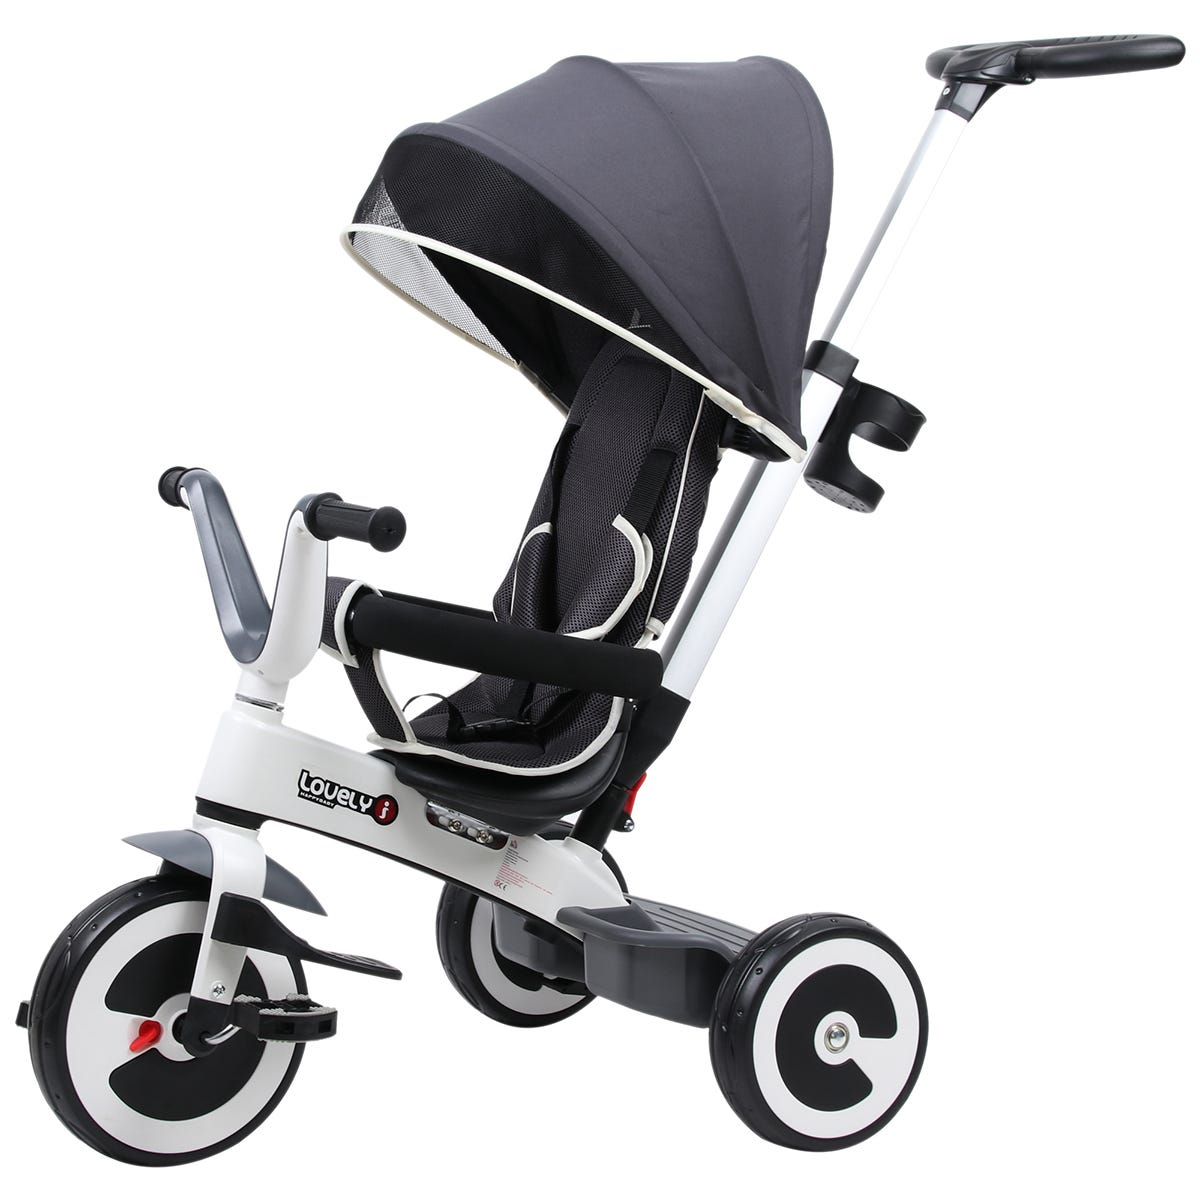 Reiten 4-in-1 Baby Tricycle & Stroller with Canopy - Dark Grey